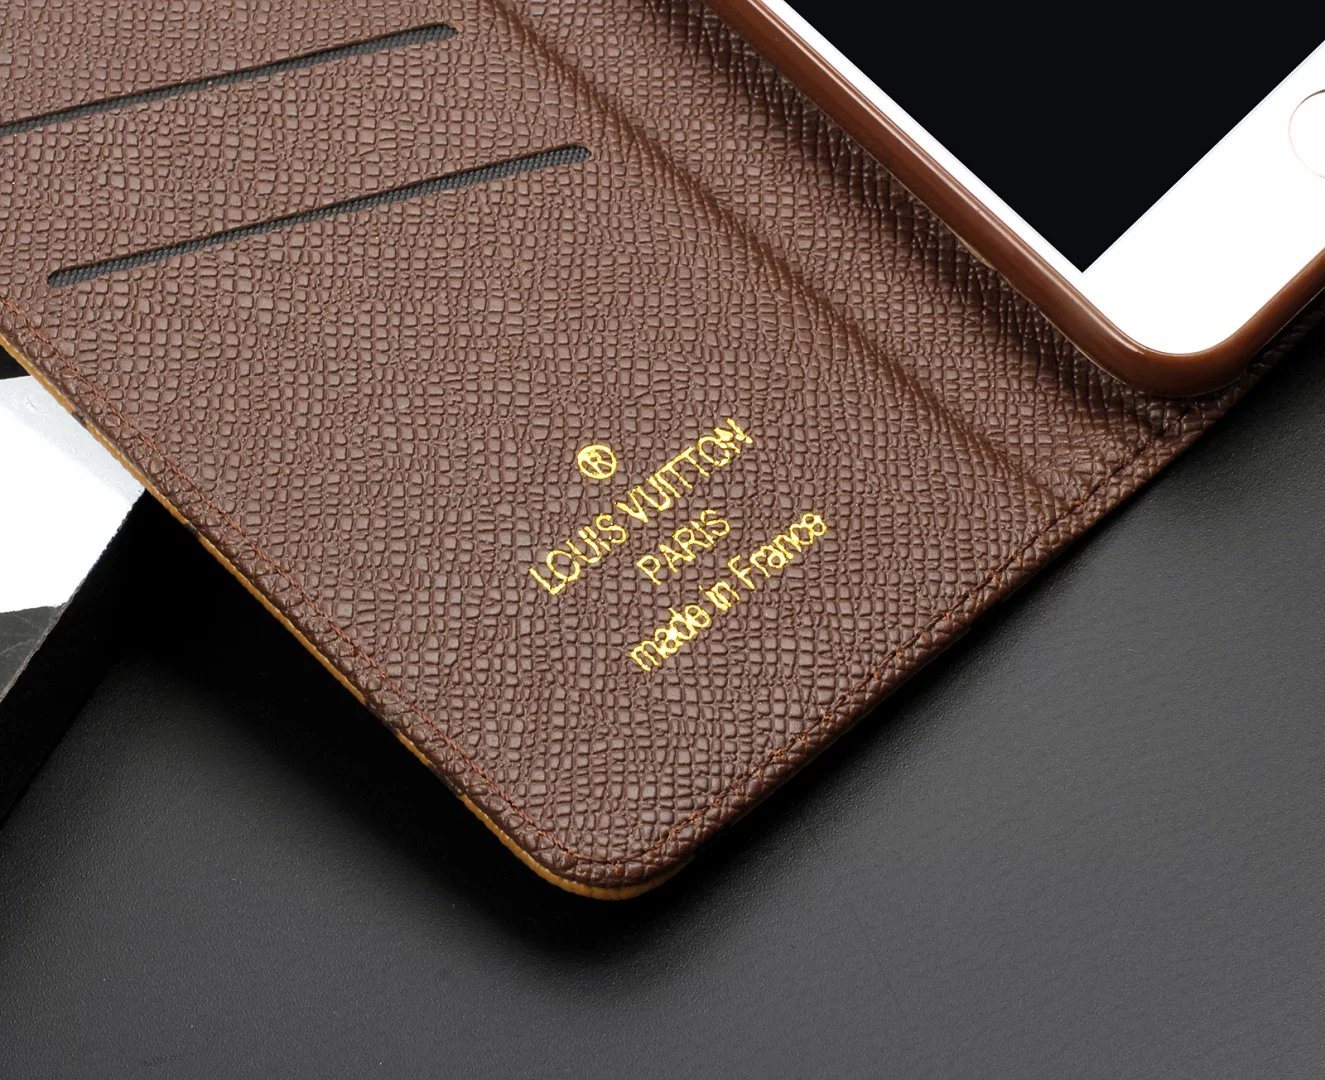 new case for iphone 6 Plus best iphone 6 Plus case brands fashion iphone6 plus case best iphone 6 protective case apple iphone 6 cases popular iphone 6 cases cheap iphone 6 phone cases tory burch iphone 6 case coveron phone cases